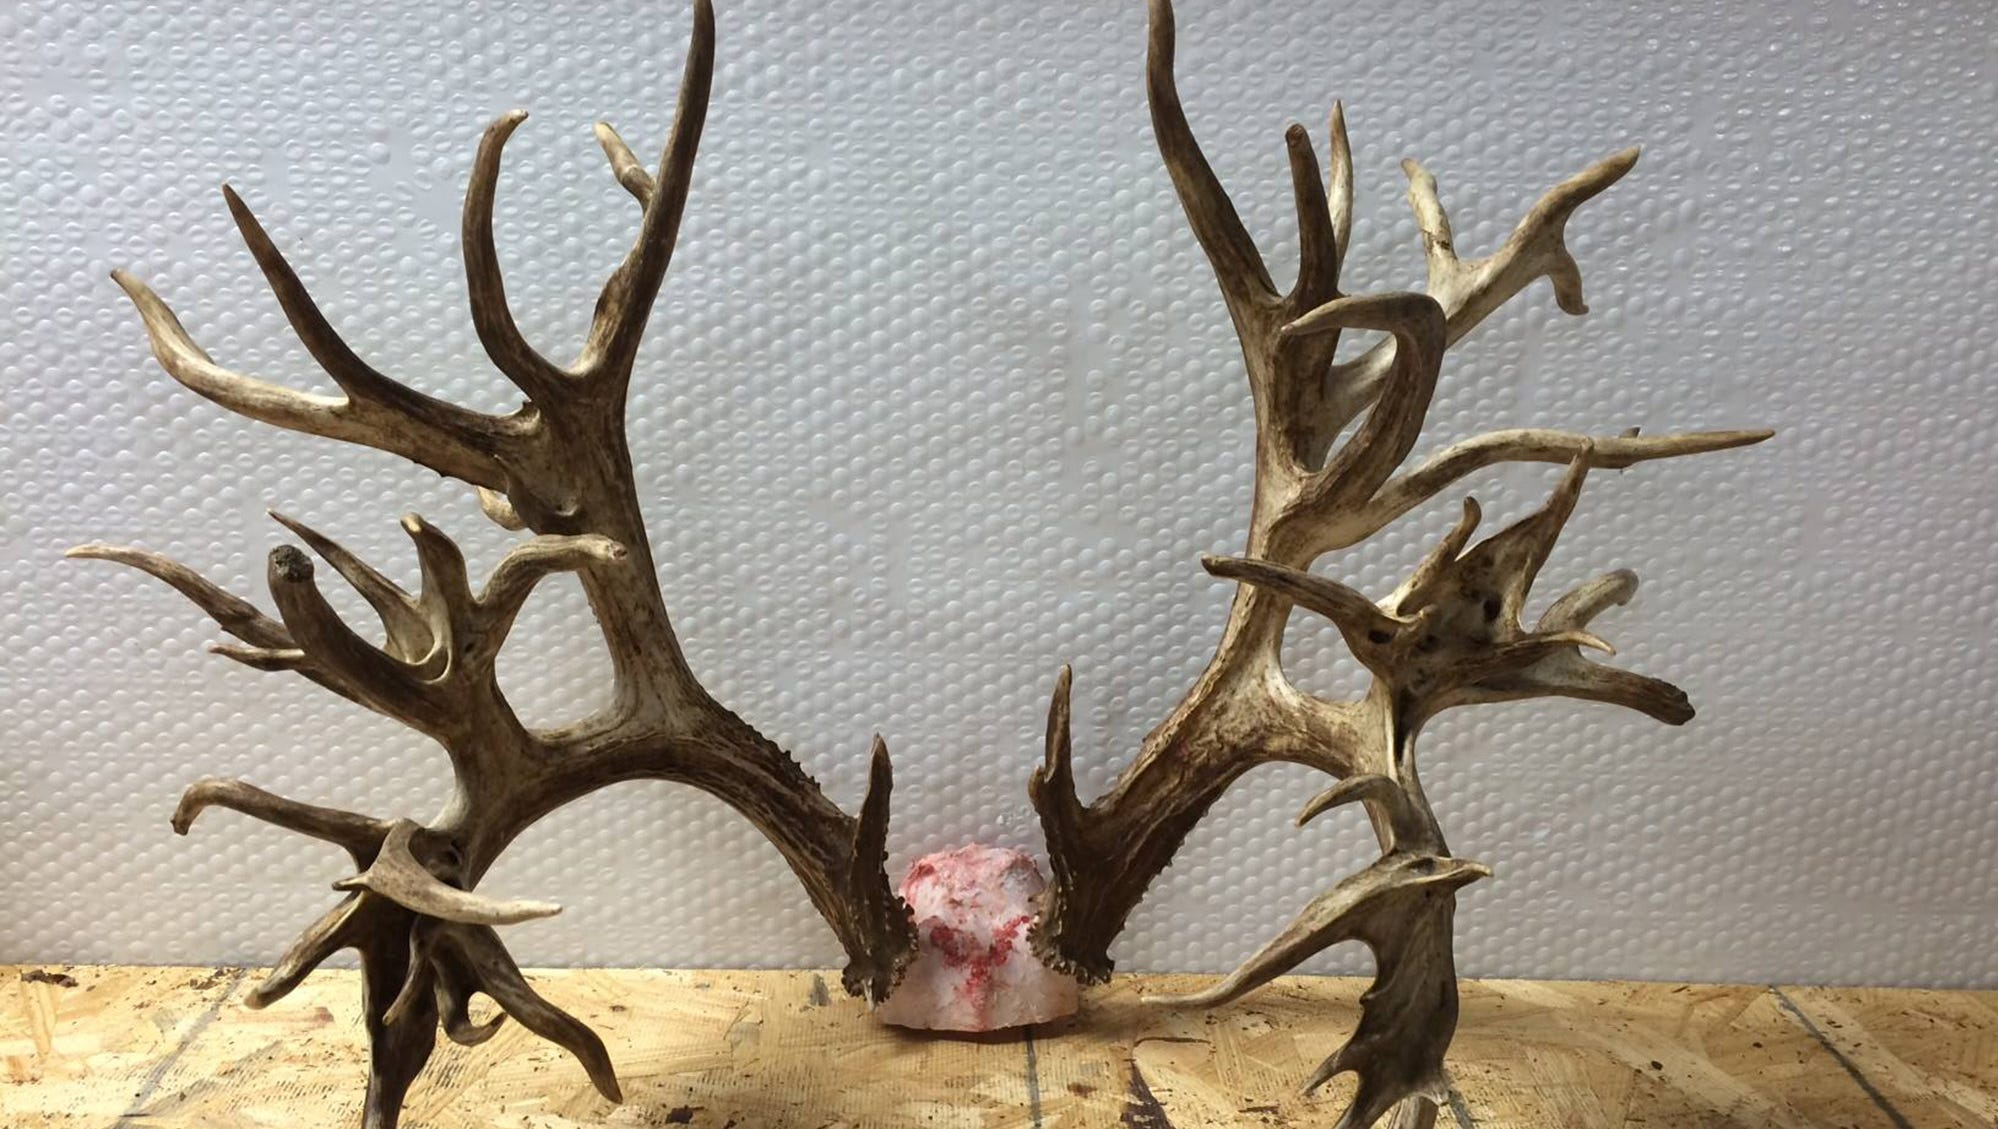 Potential World Record Deer Antlers